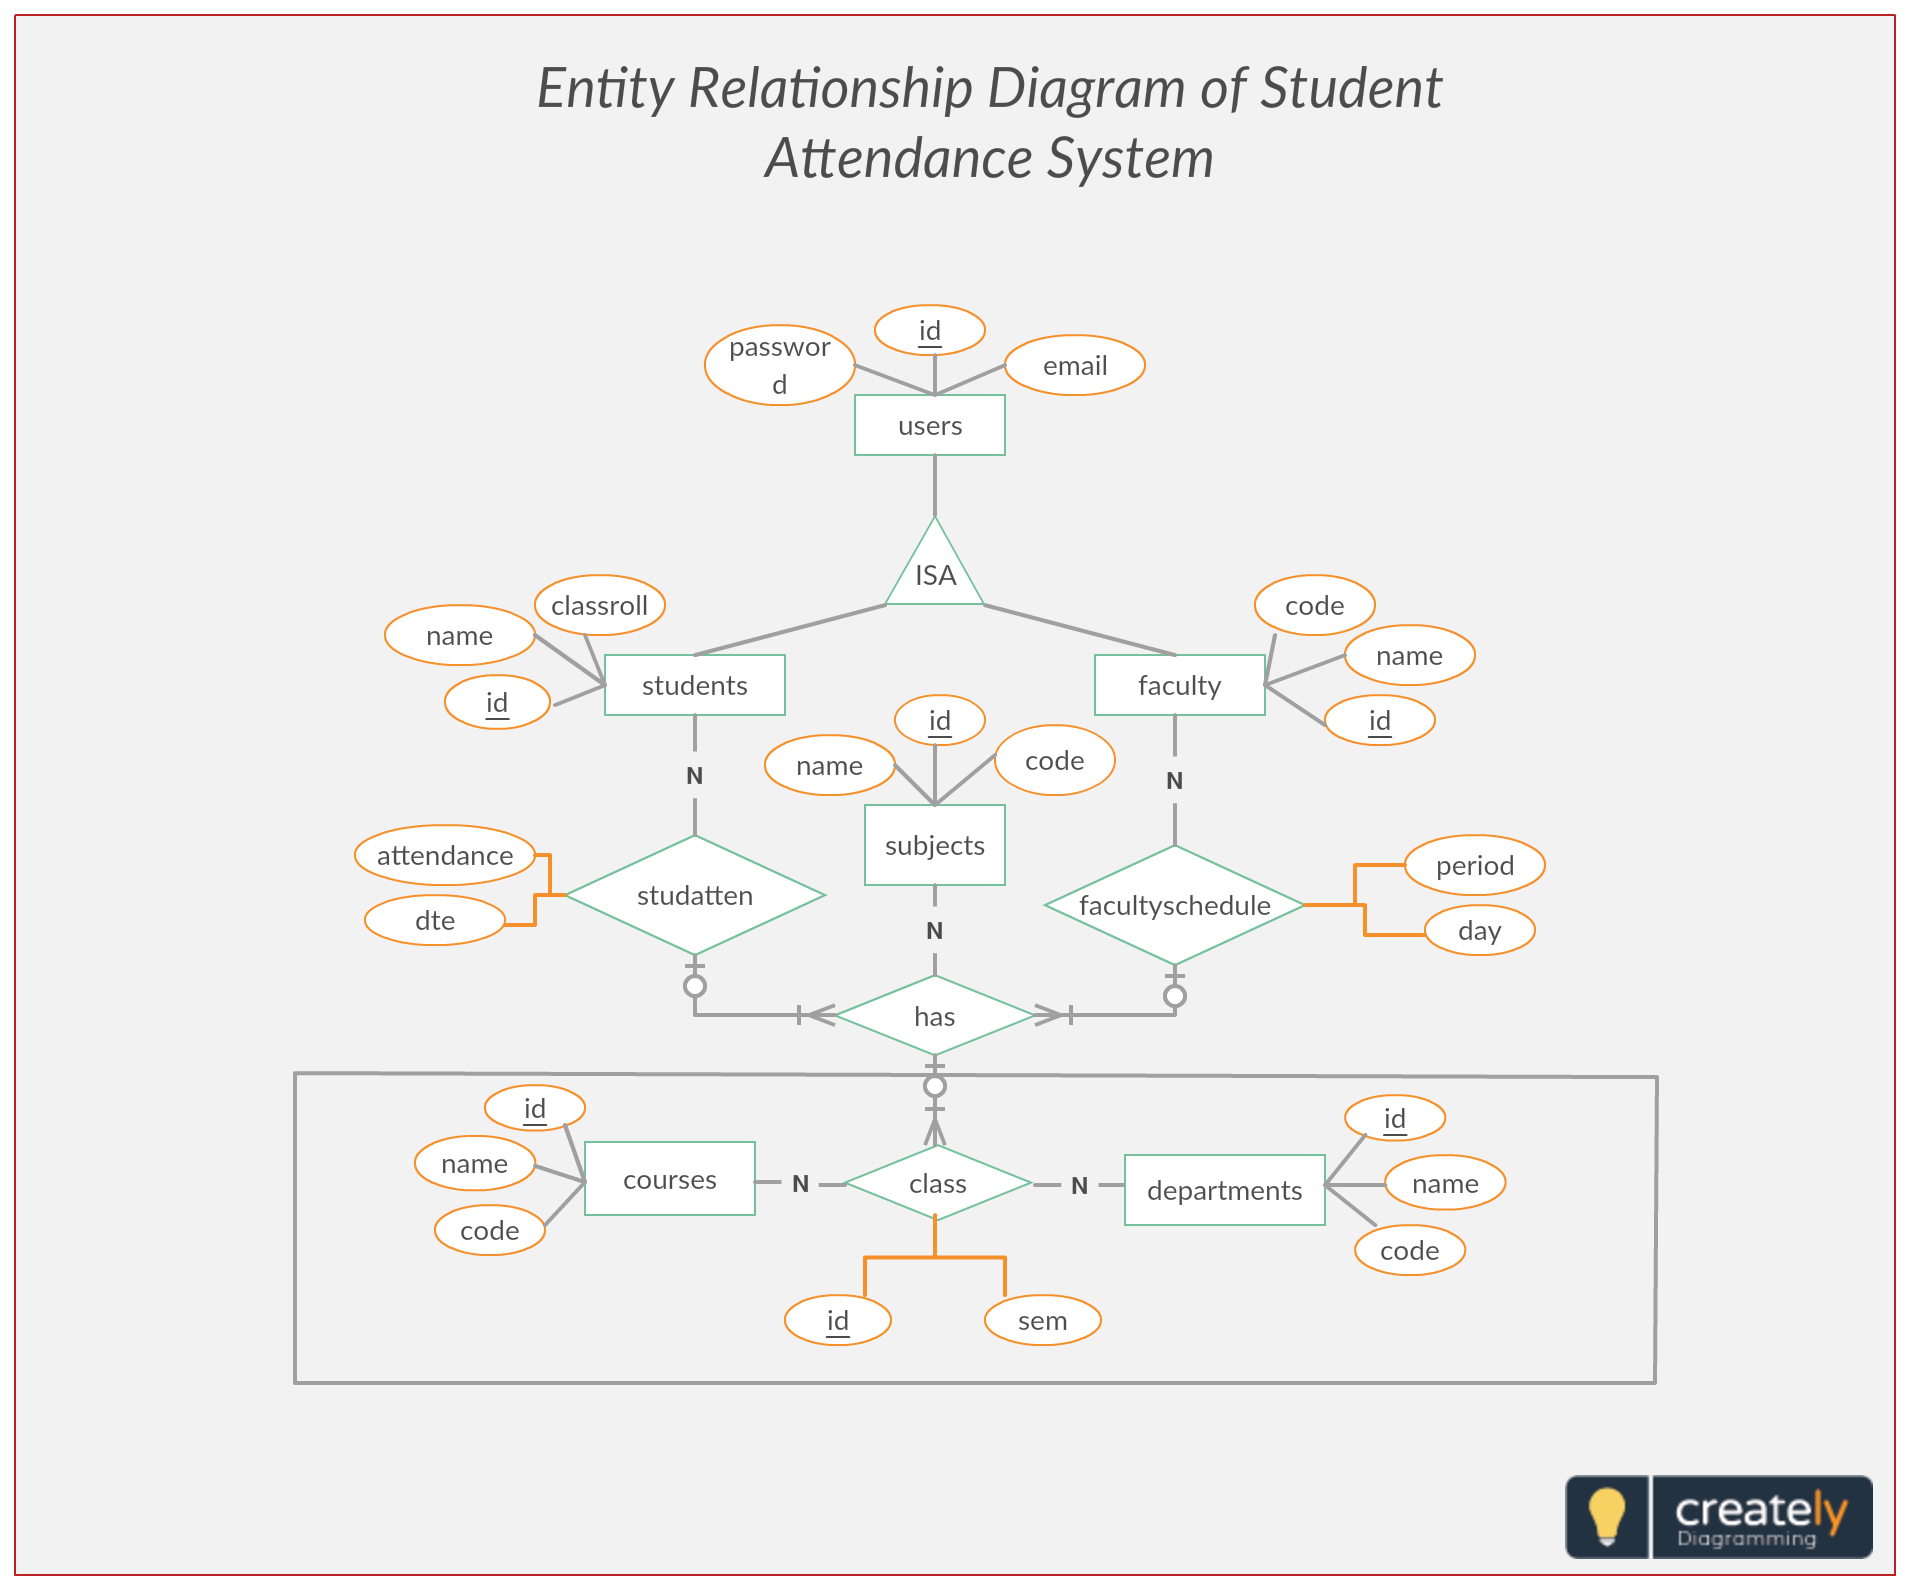 er diagram student attendance management system entity relationship diagram represents the relationship between entities in a table  [ 1910 x 1589 Pixel ]